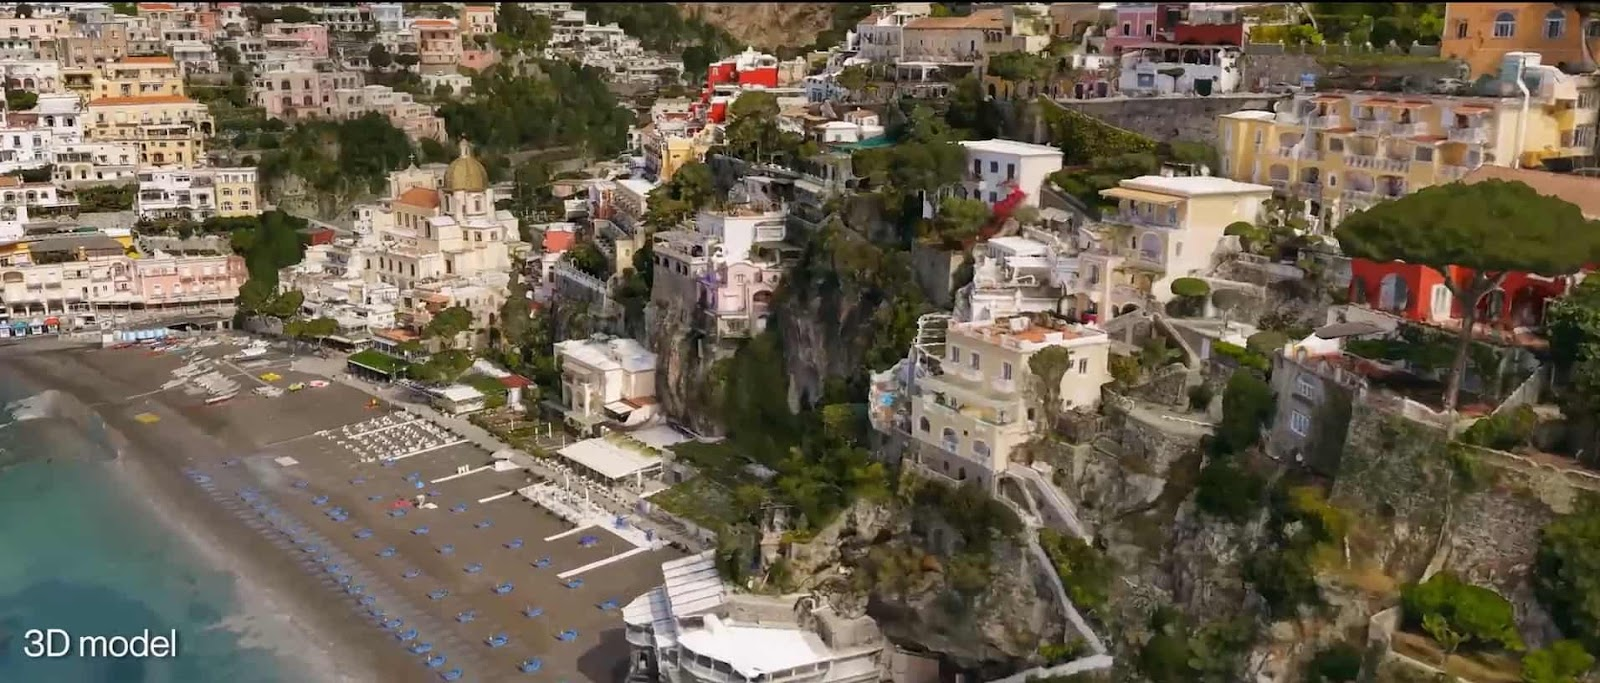 A 3D model of Positano, Italy created using the Parrot ANAFI Ai